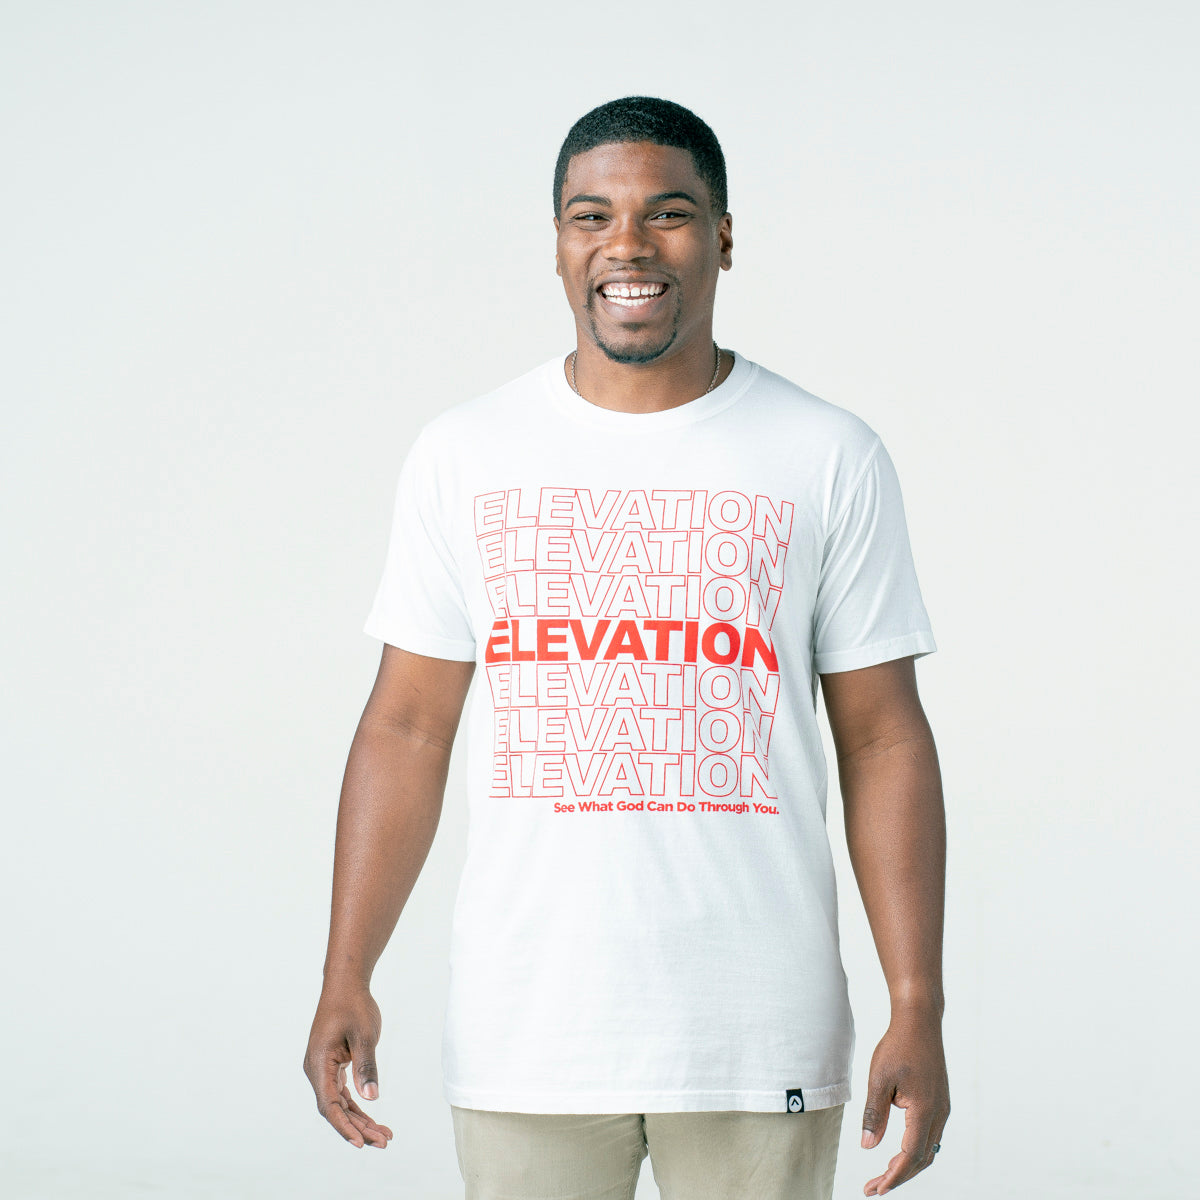 'Elevation - See What God Can Do Through You.' tee